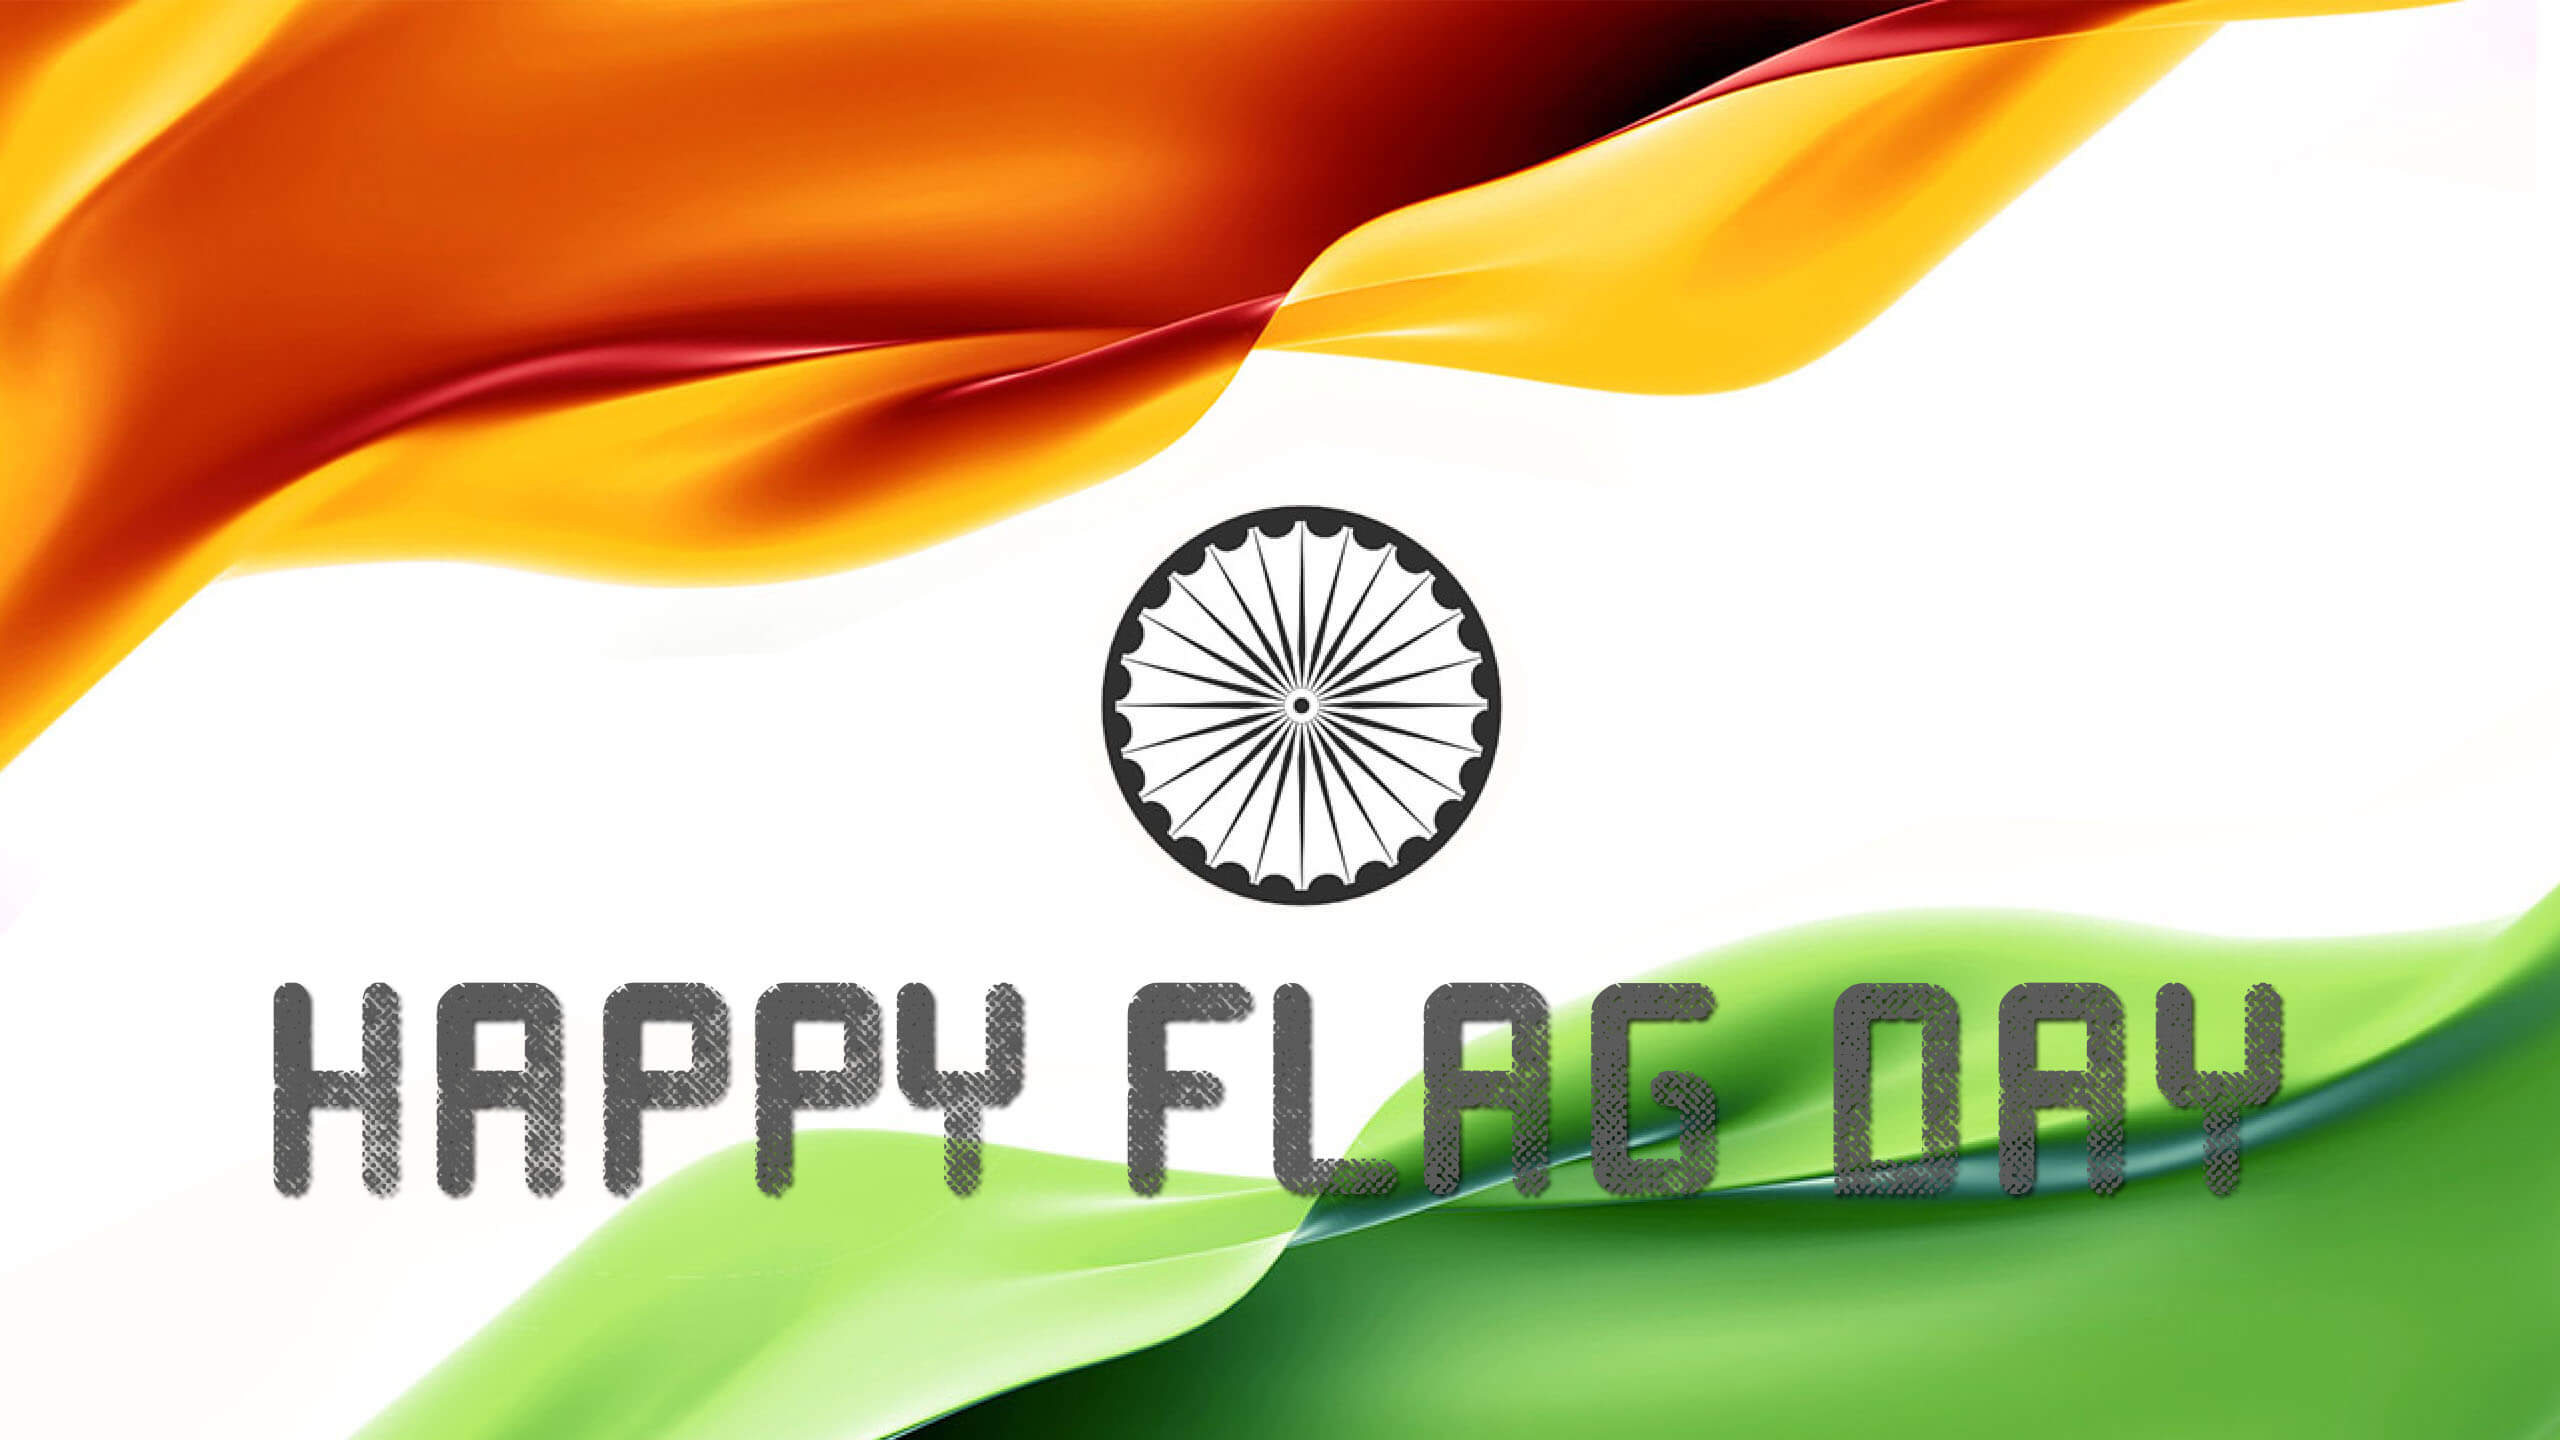 happy flag day india hd background pc wallpaper